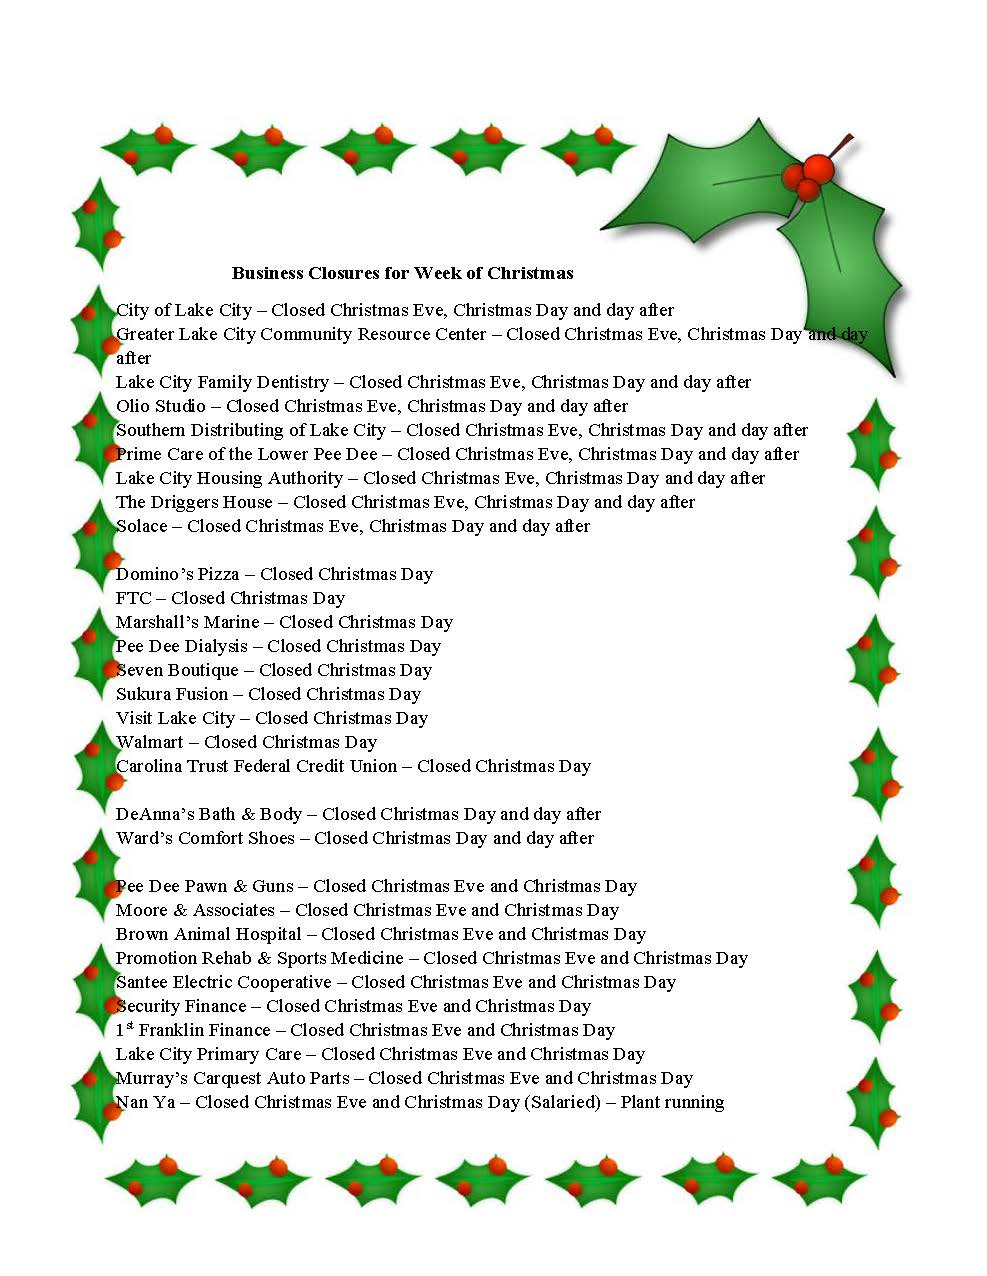 Business Closures for Week of Christmas   12.20.2018_Page_1